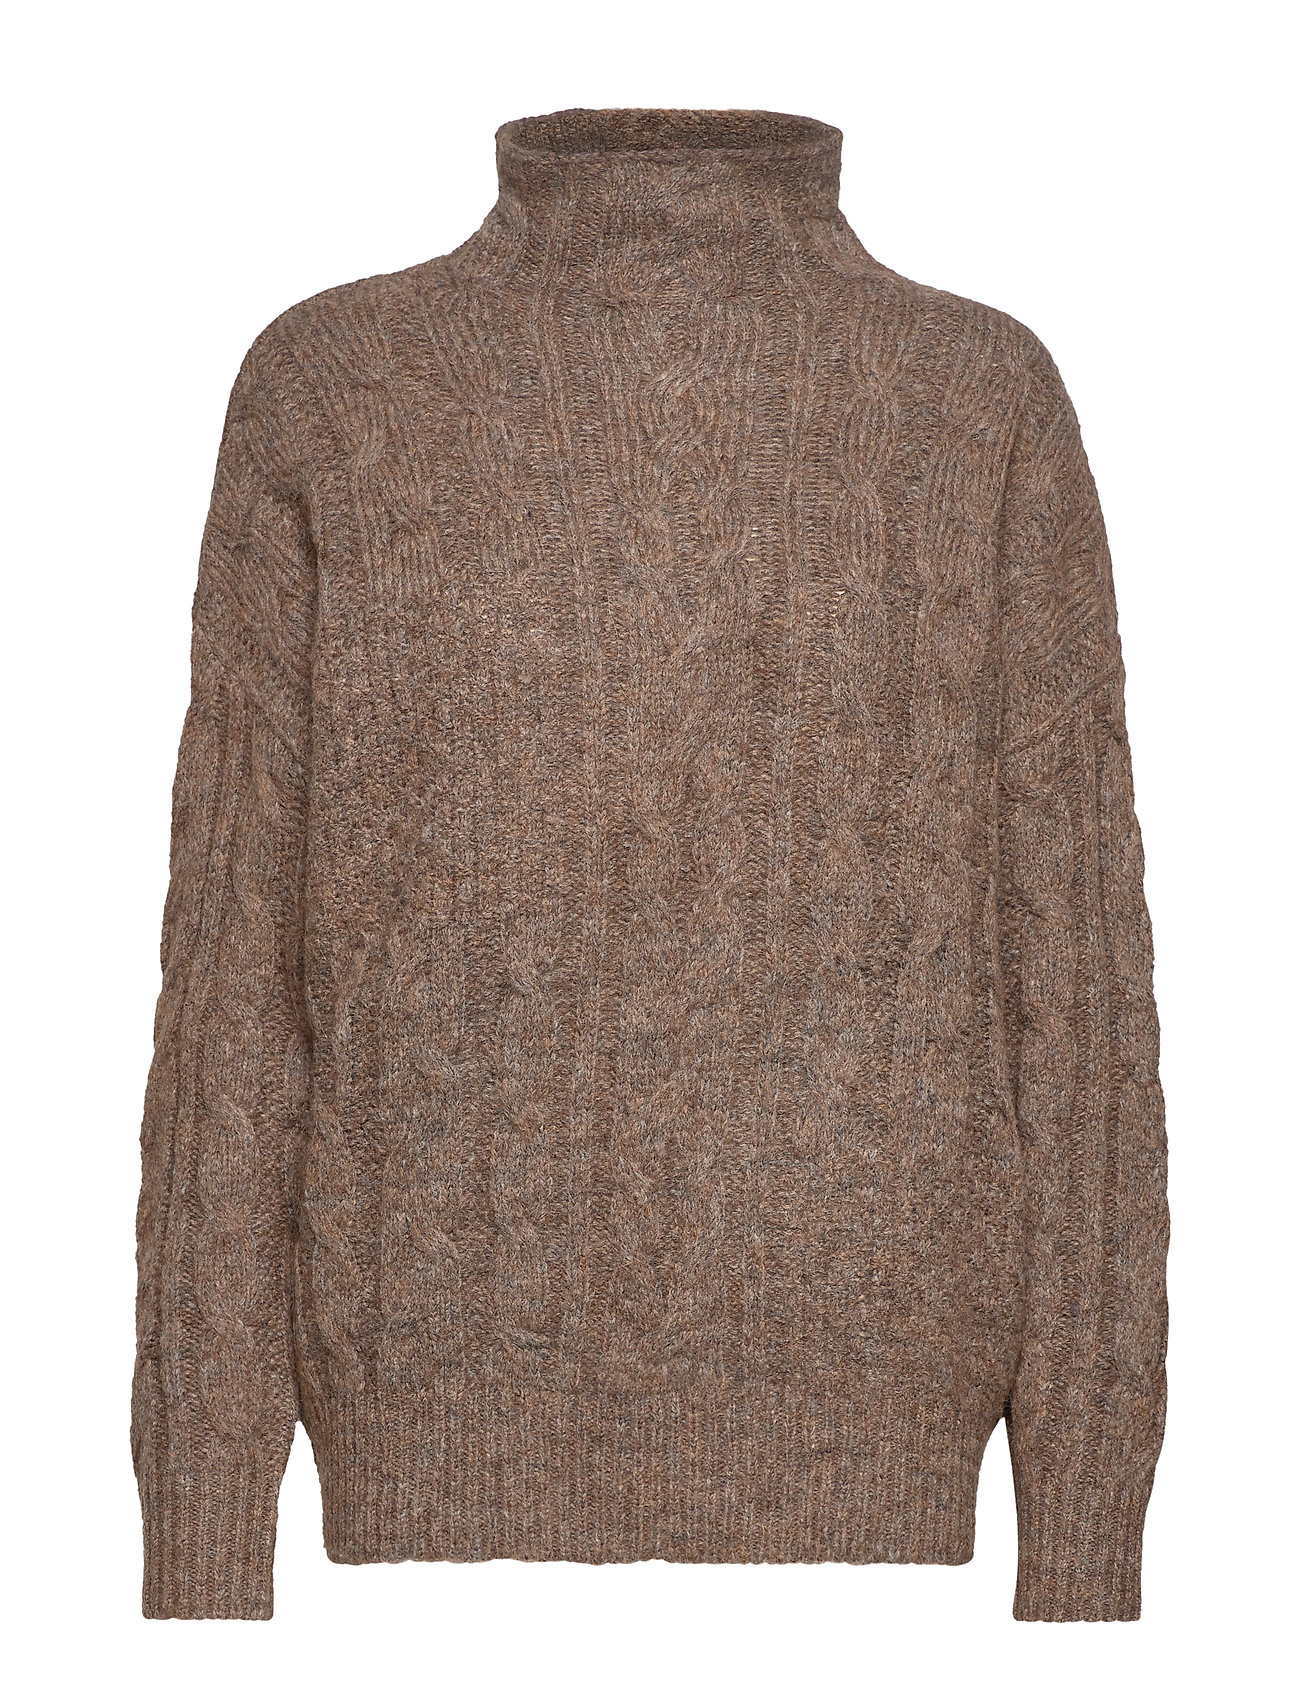 Twist & Tango Marianna Cable Sweater - BROWN MéLANGE